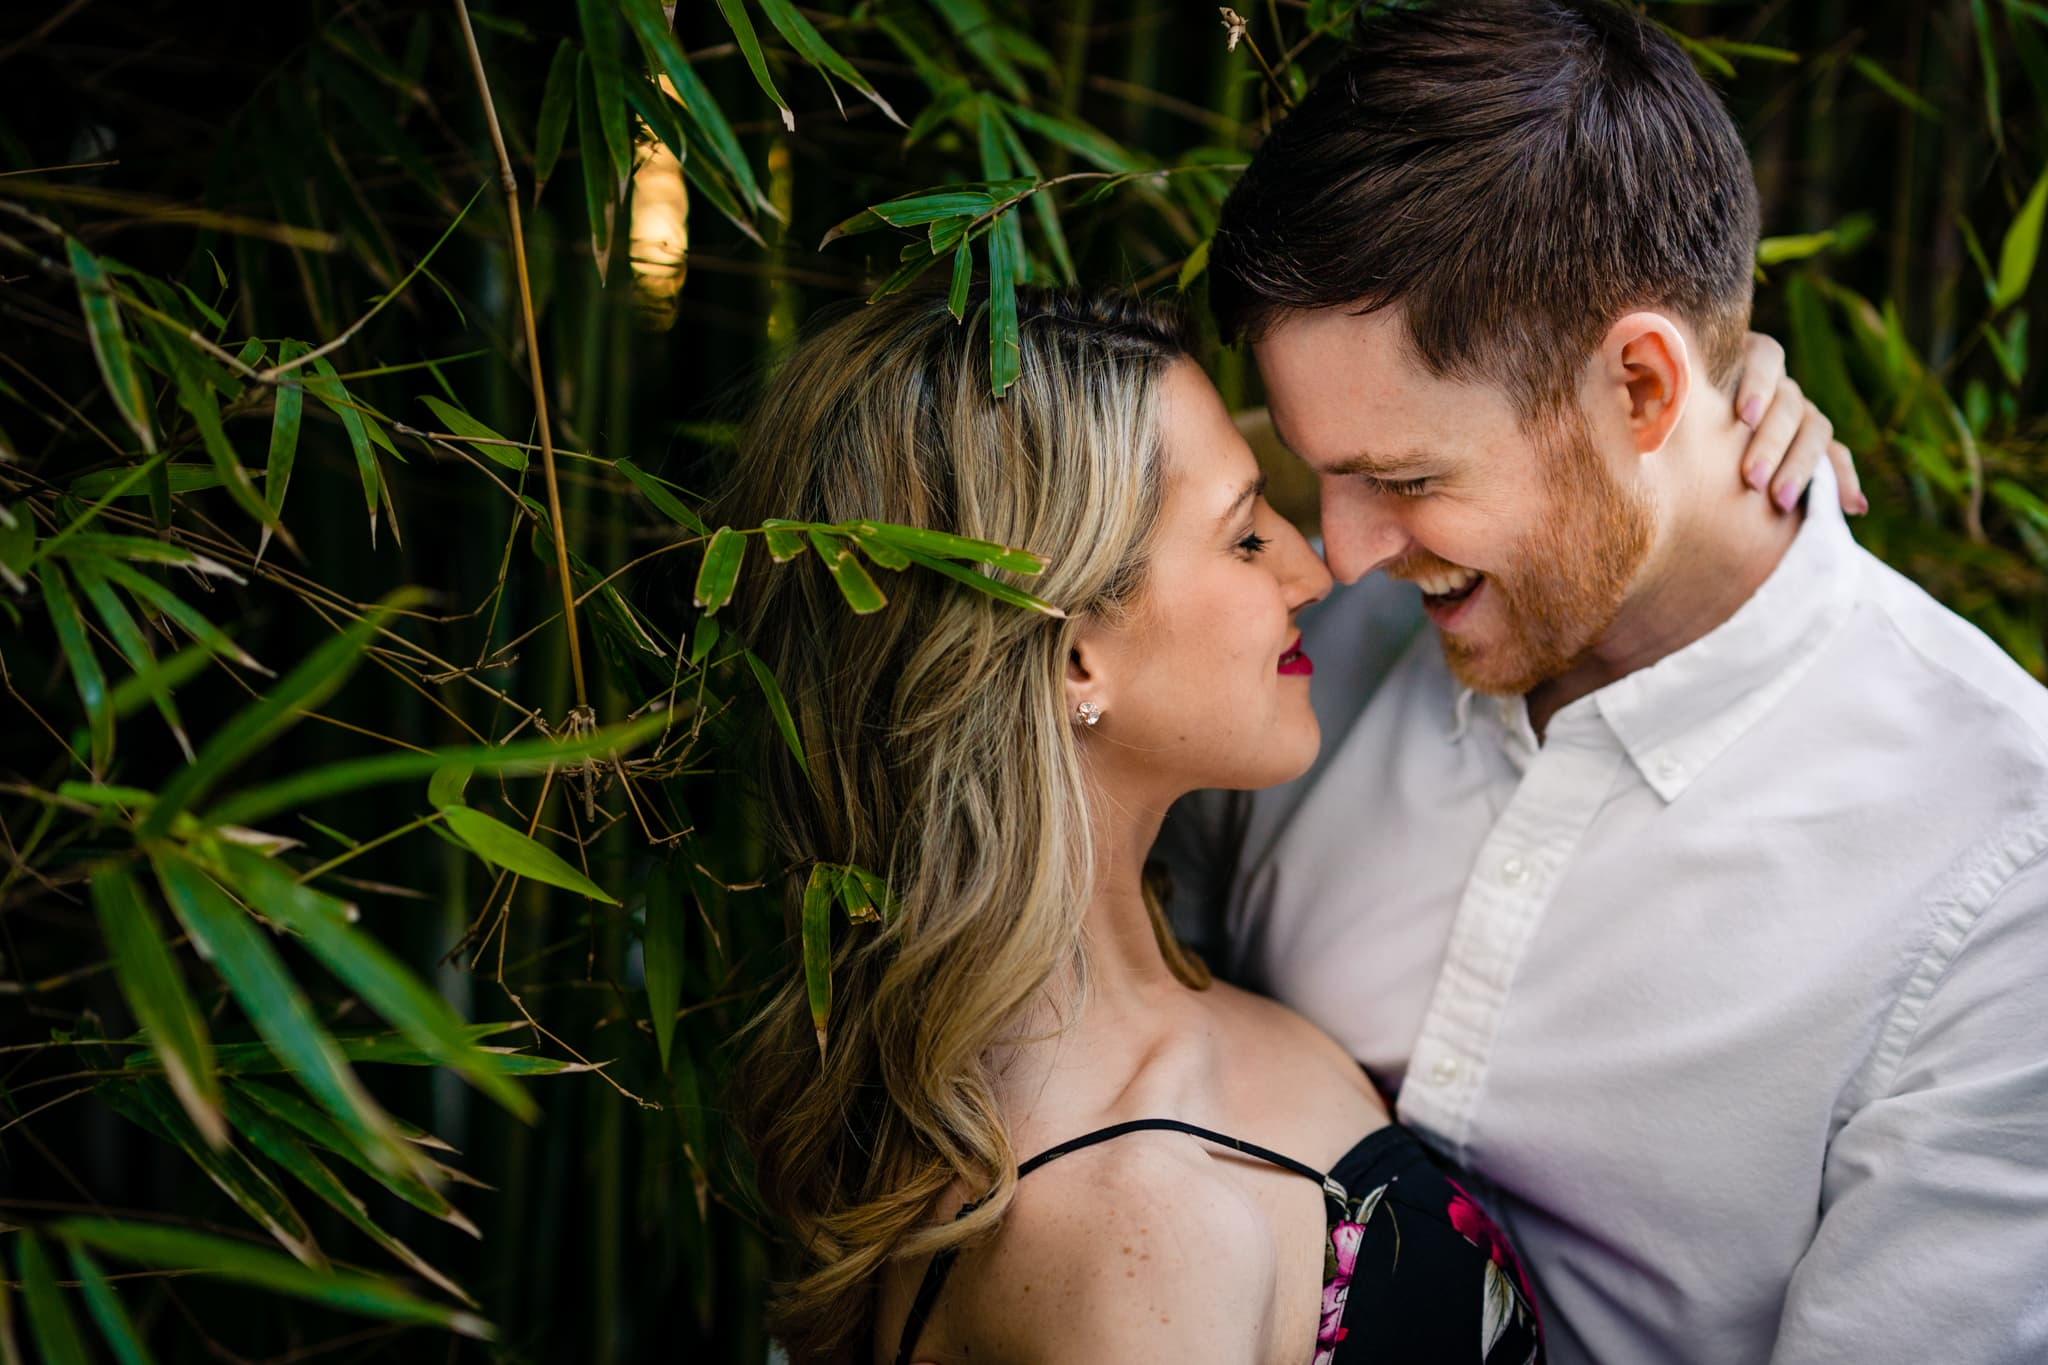 Woman embraces man with both smiling outdoors near bamboo in Orlando, Florida by Dayton Wedding Photographer Studio 22 Photography